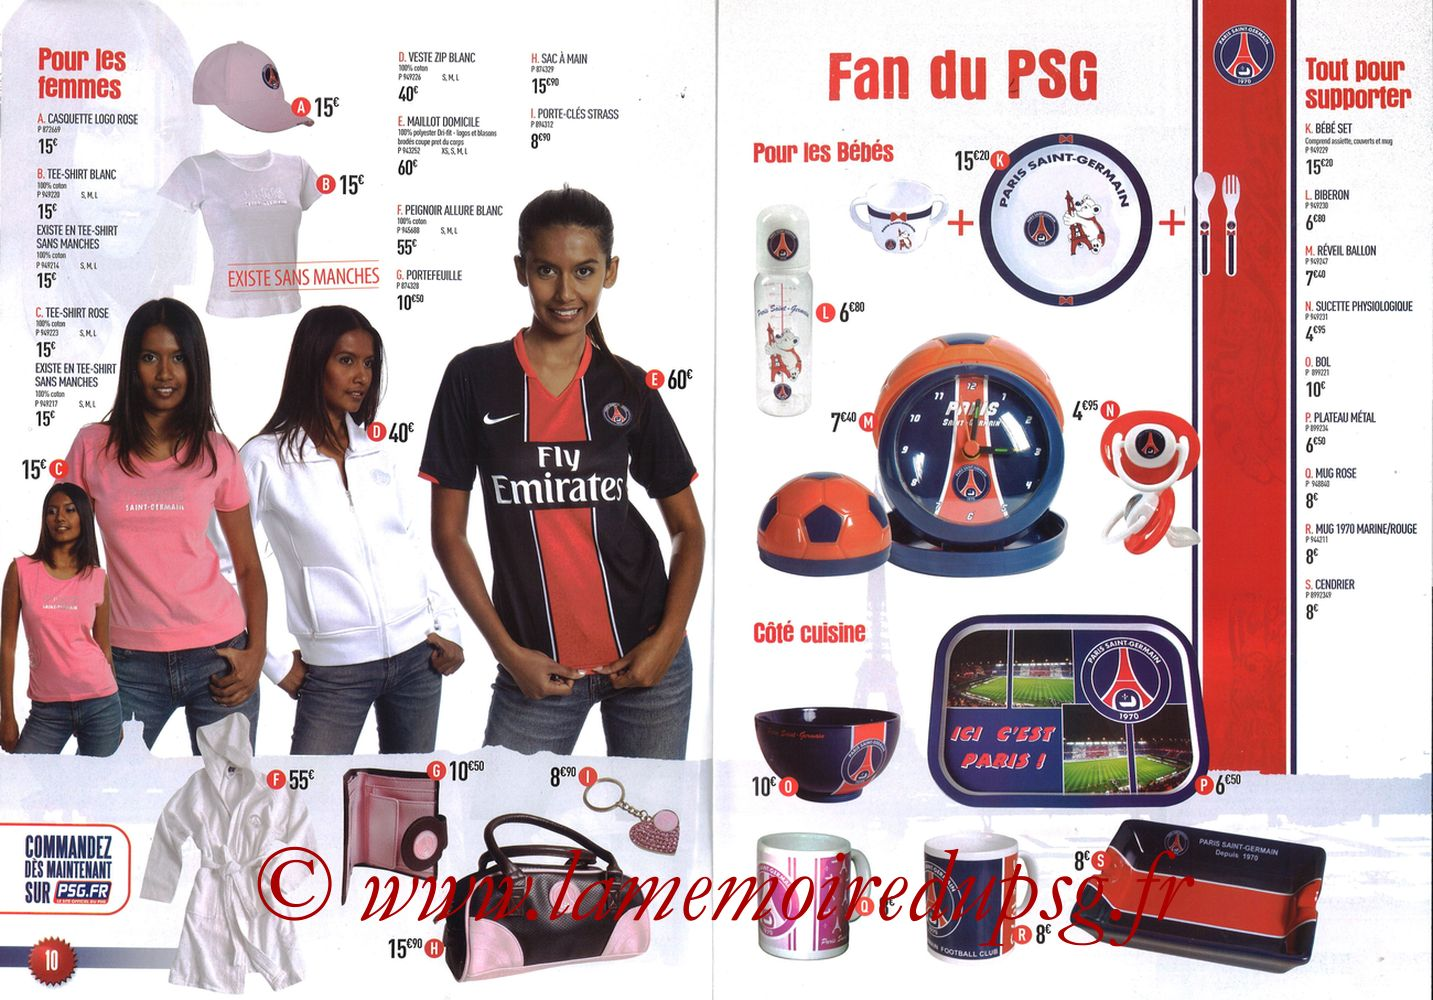 Catalogue PSG - 2007-08 - Pages 10 et 11